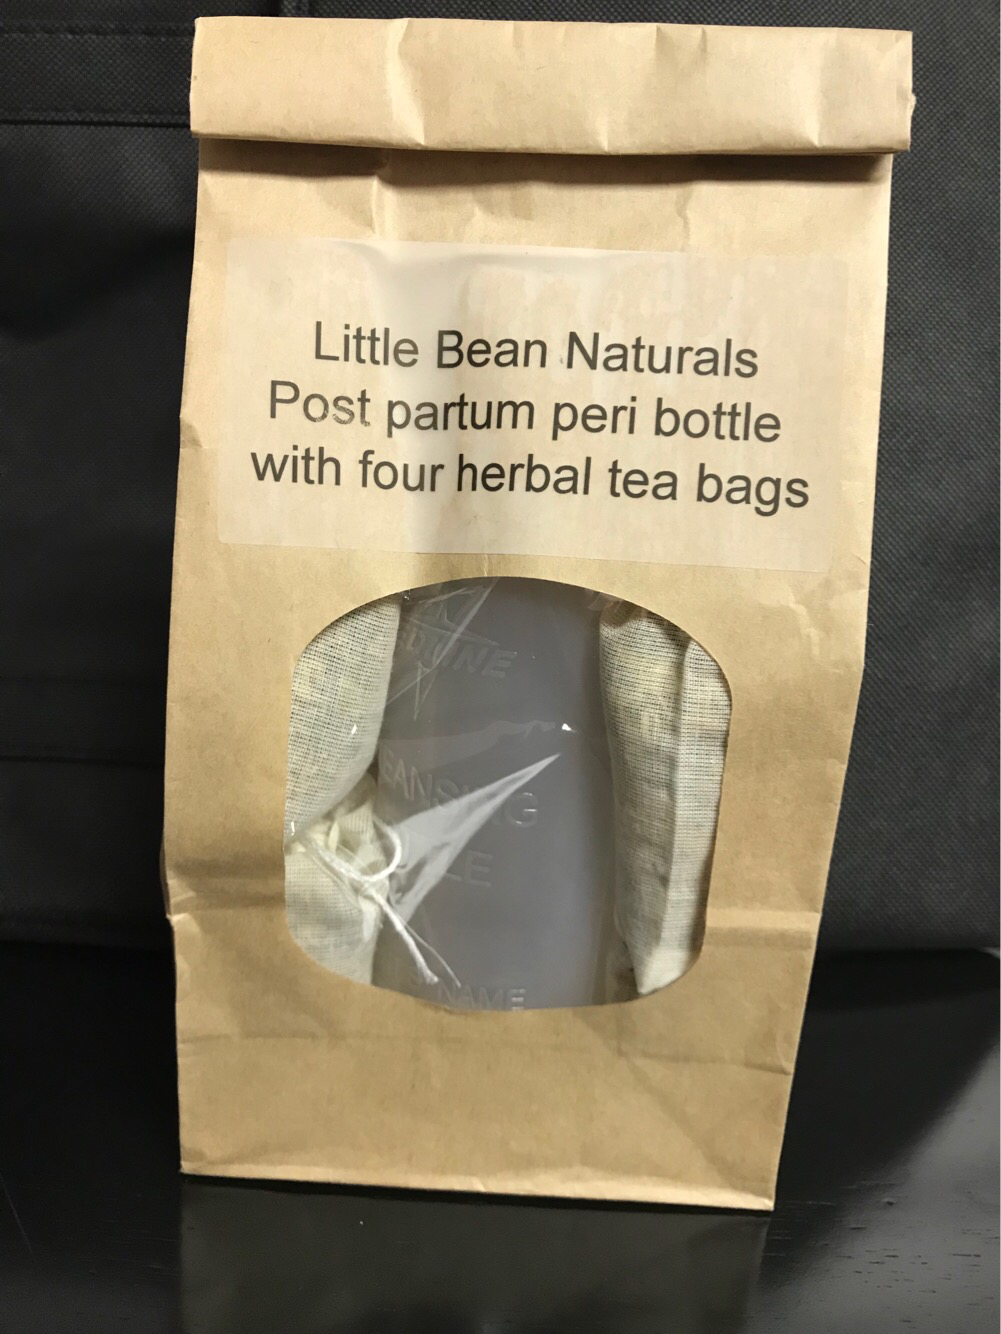 Little Bean Naturals Peri Bottle with Herbal Bags